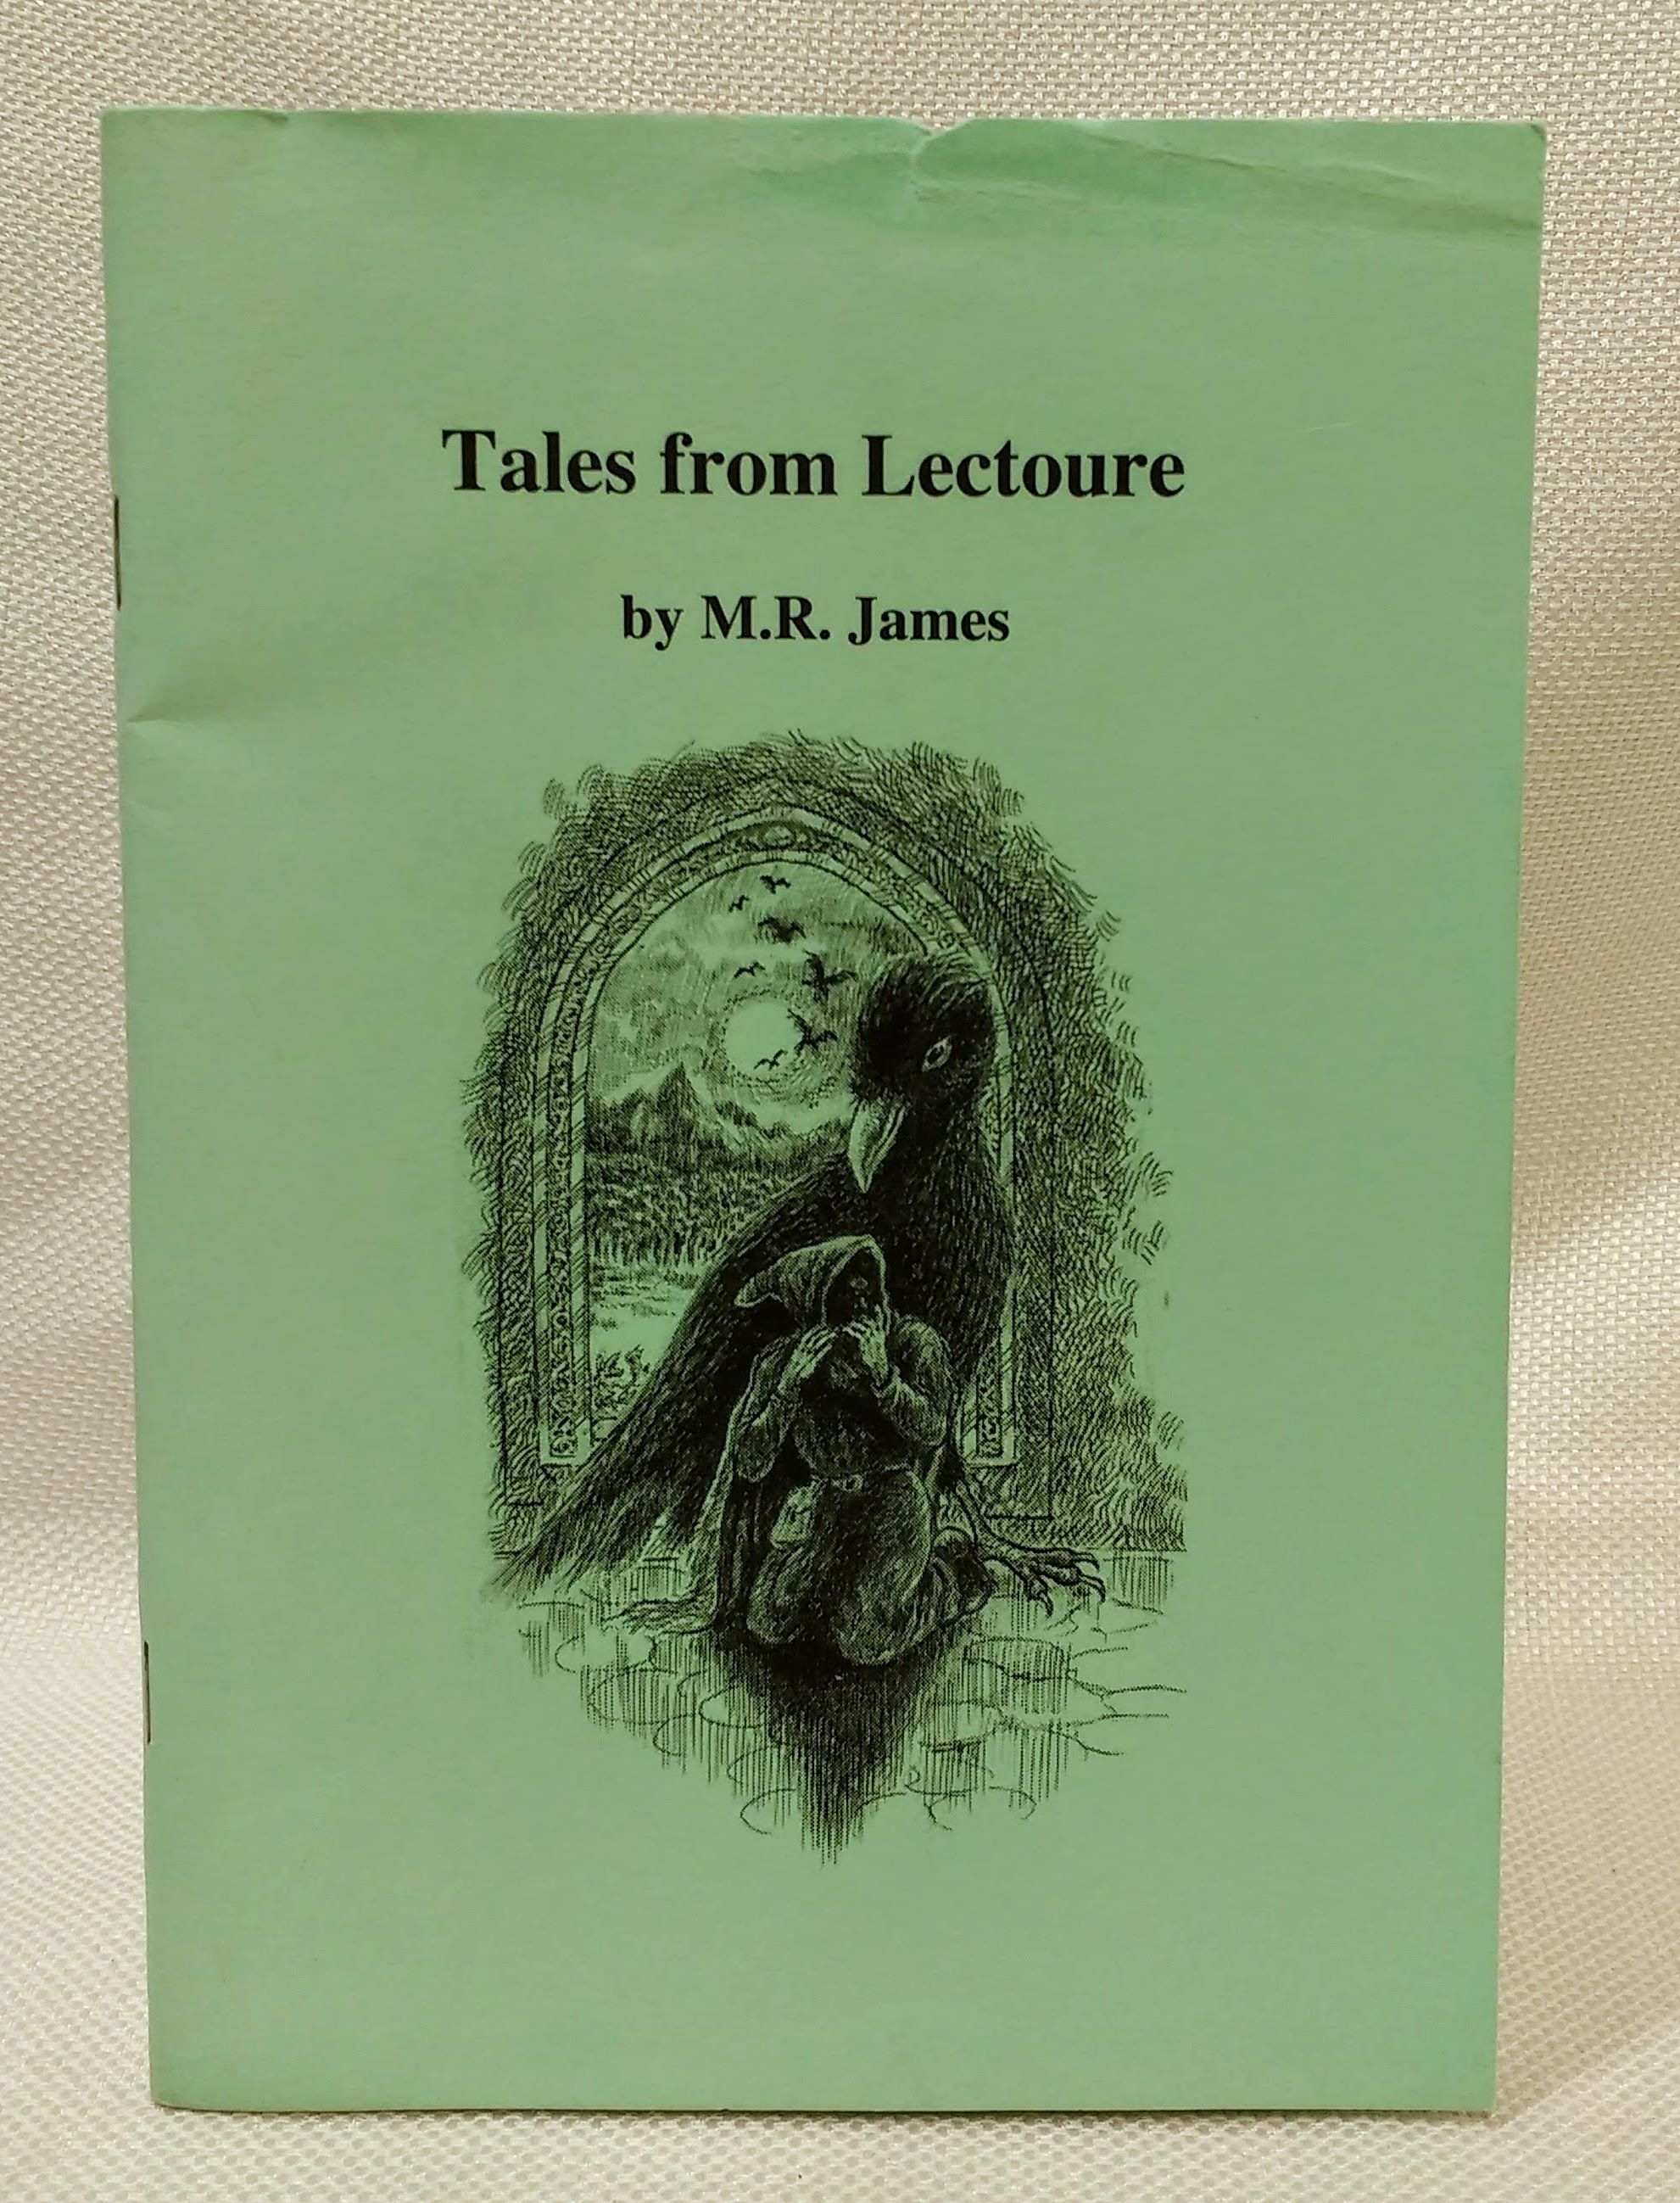 Tales from Lectoure (Haunted Library Publ. #70), James, M.R.; Pardoe, Rosemary [Editor]; Simpson, Jacqueline [afterword]